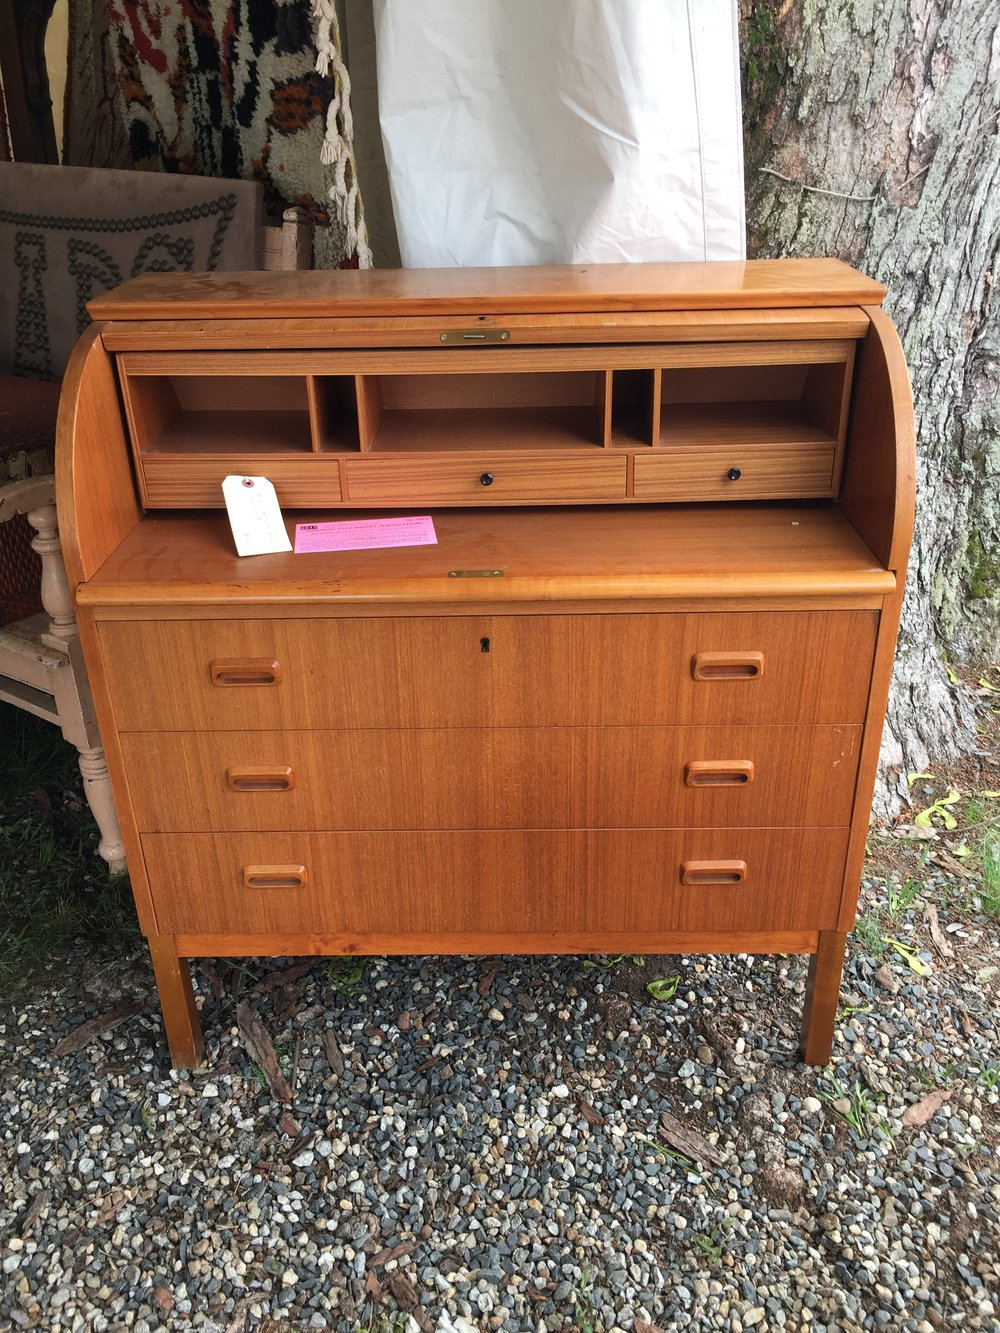 A mid-century roll desk. I've never seen one and I really, REALLY want to figure out a way to get one of these into my house.  But right now, there's just no room.